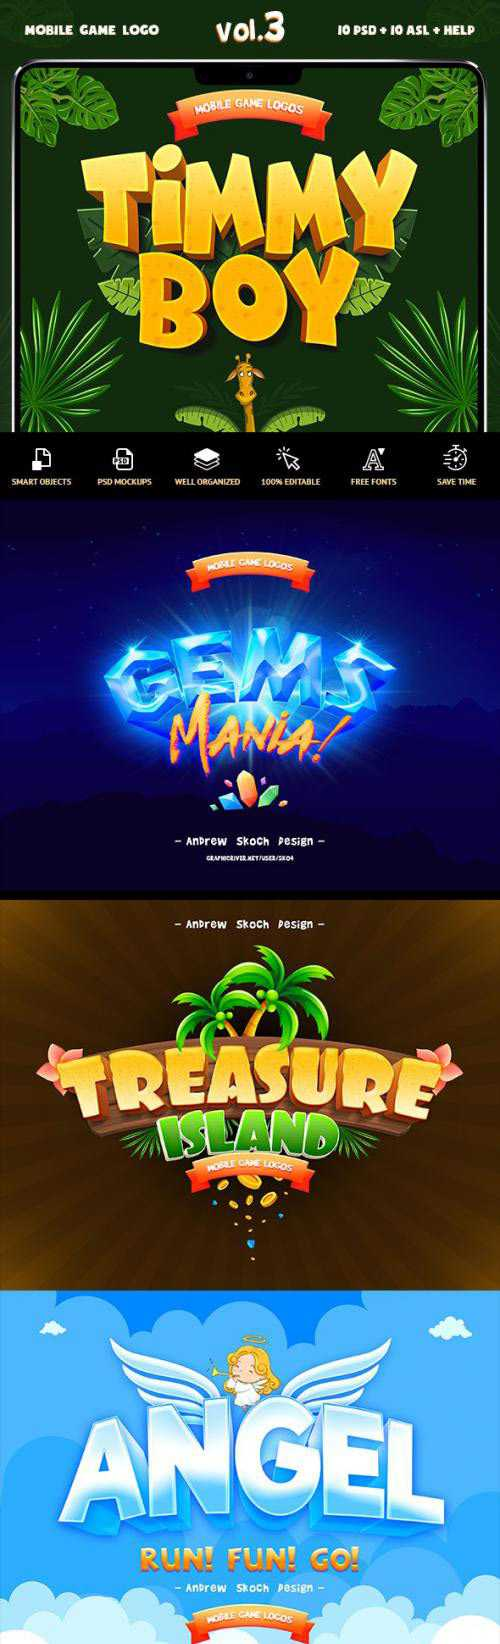 Game Titles Text Effects Vol.3 – 23831817